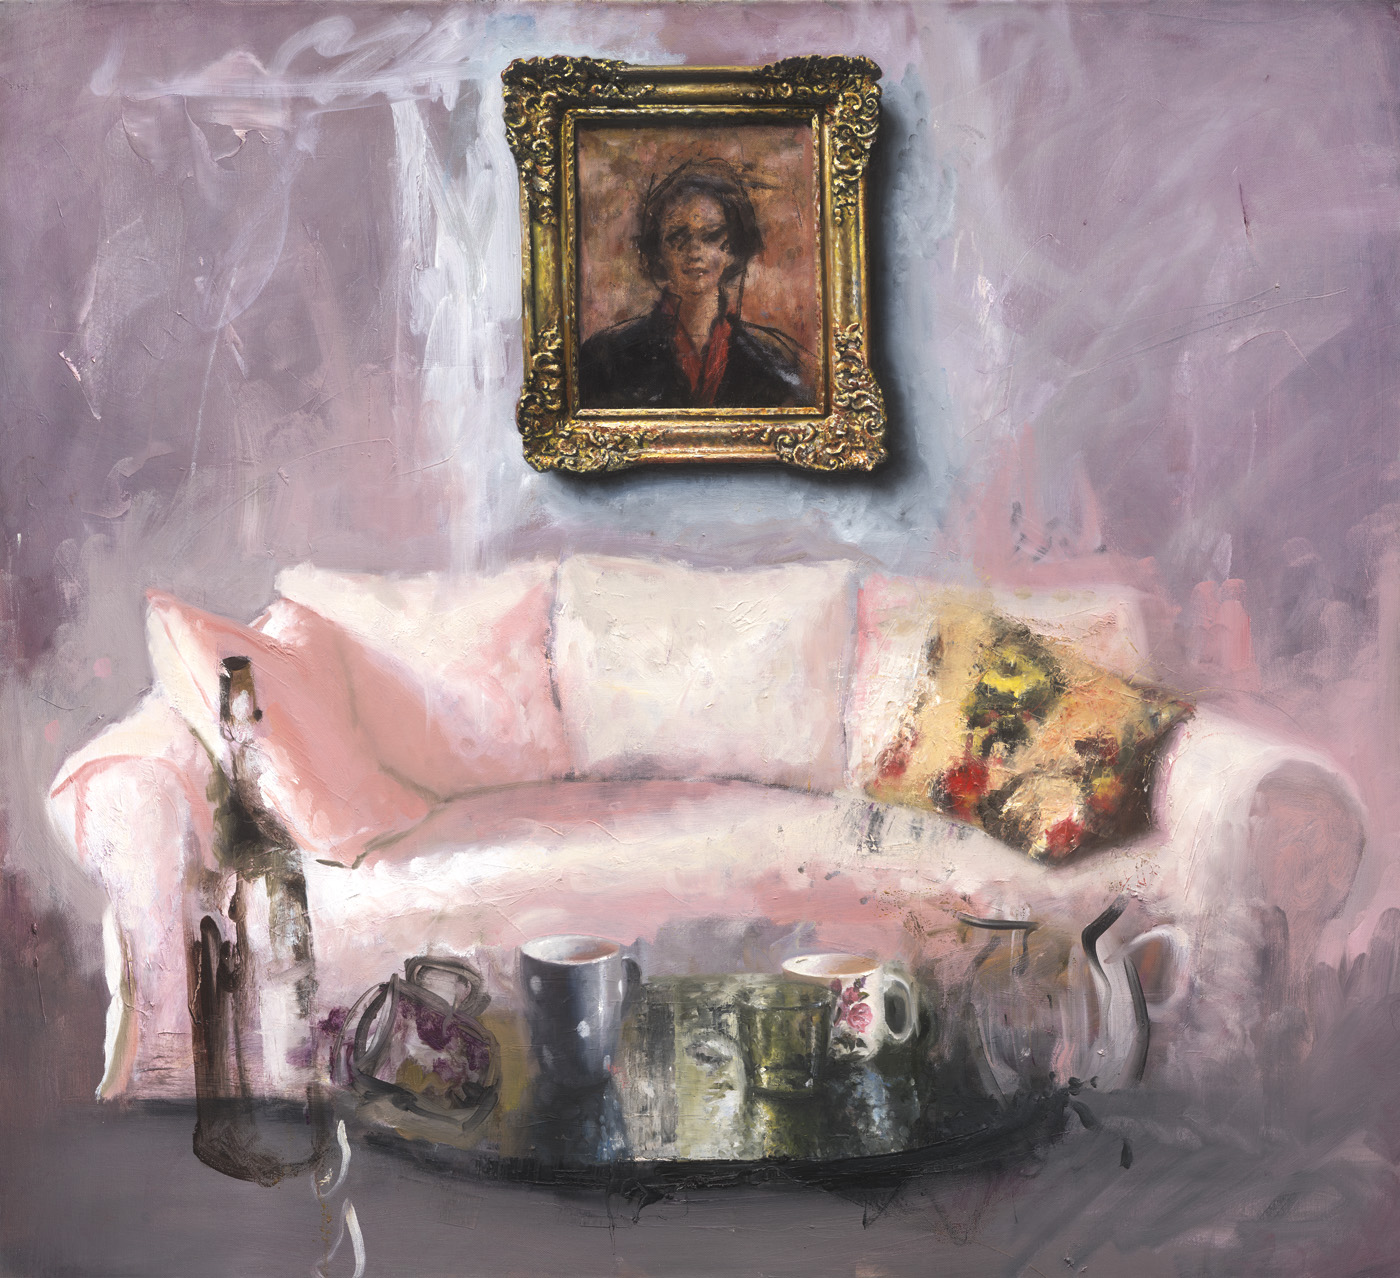 Match the painting to the sofa